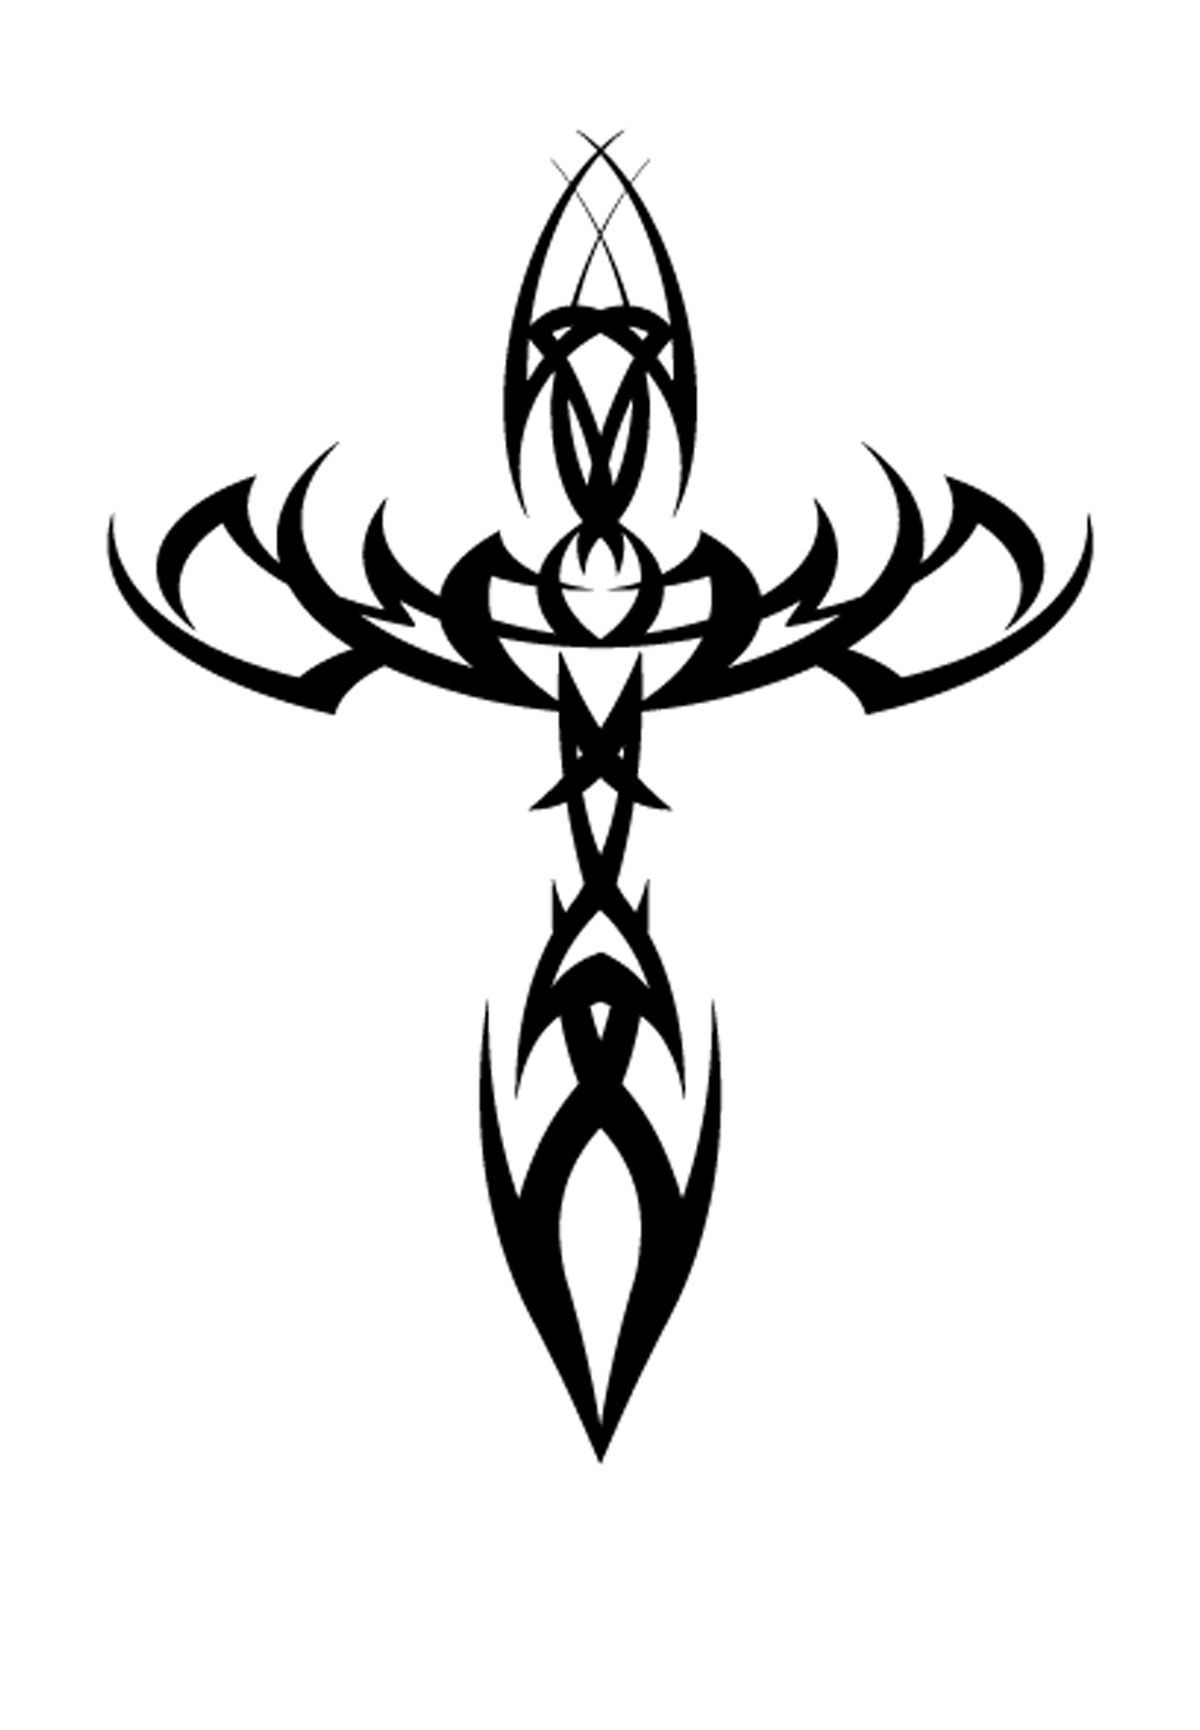 Pictures Of Tribal Cross Tattoos: Pin On Tattoo